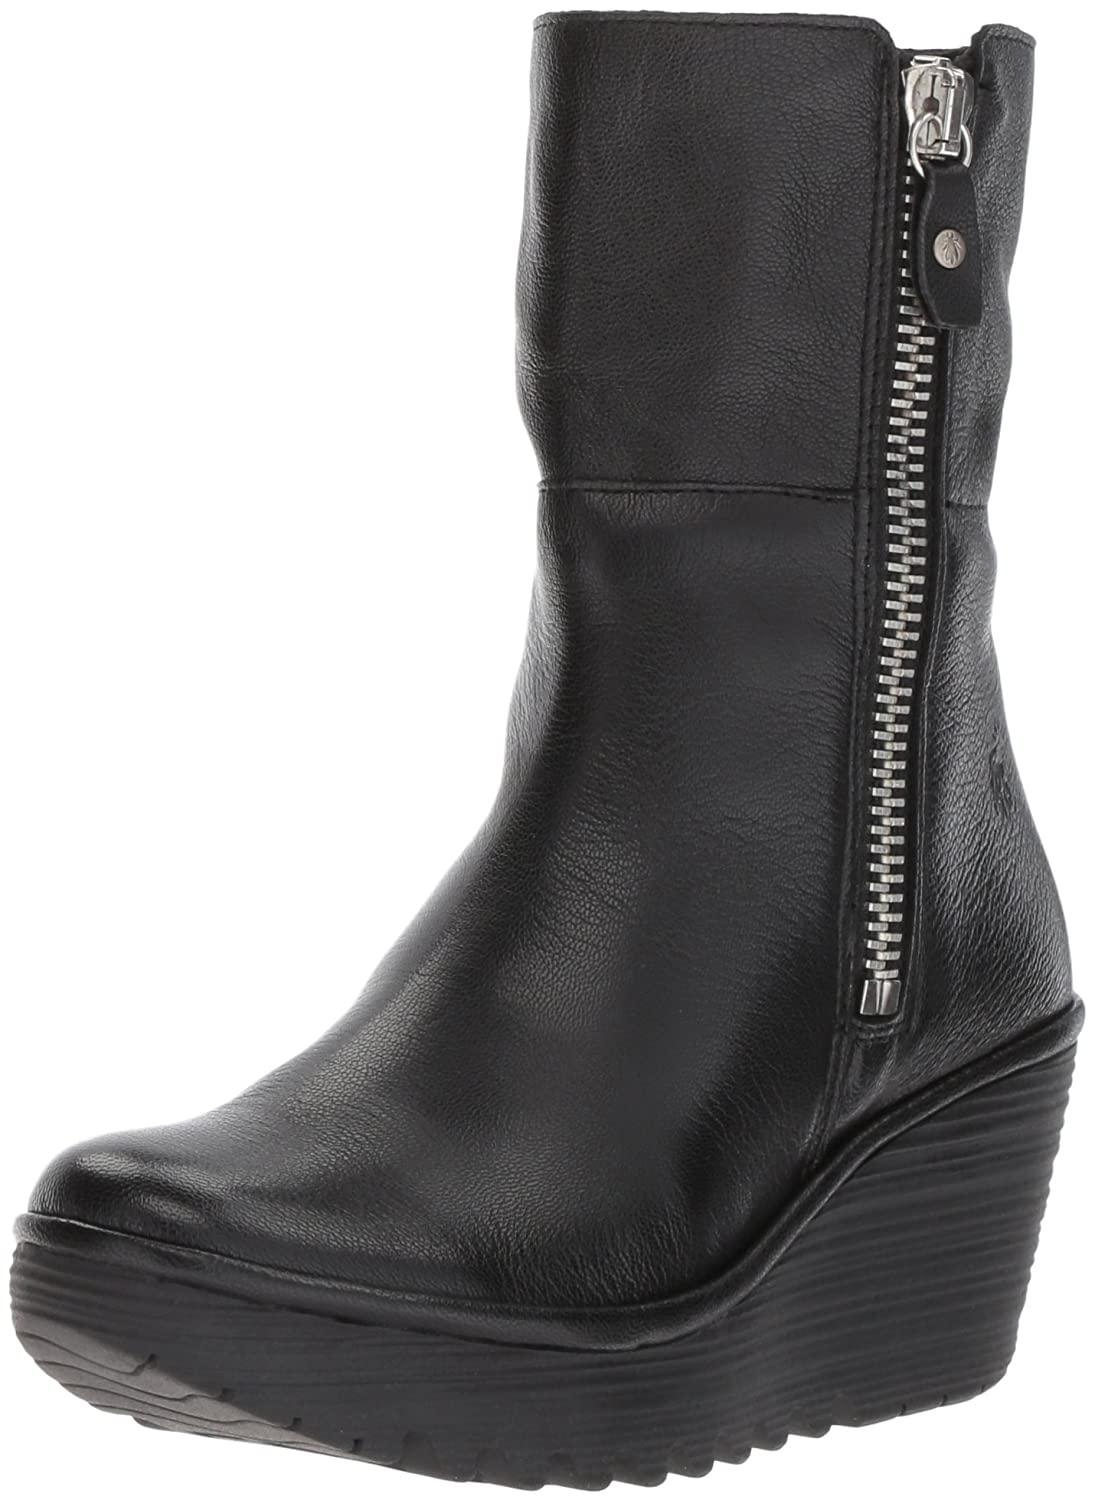 Fly London Yex668fly, Botines para Mujer Black/Silver (Leather)